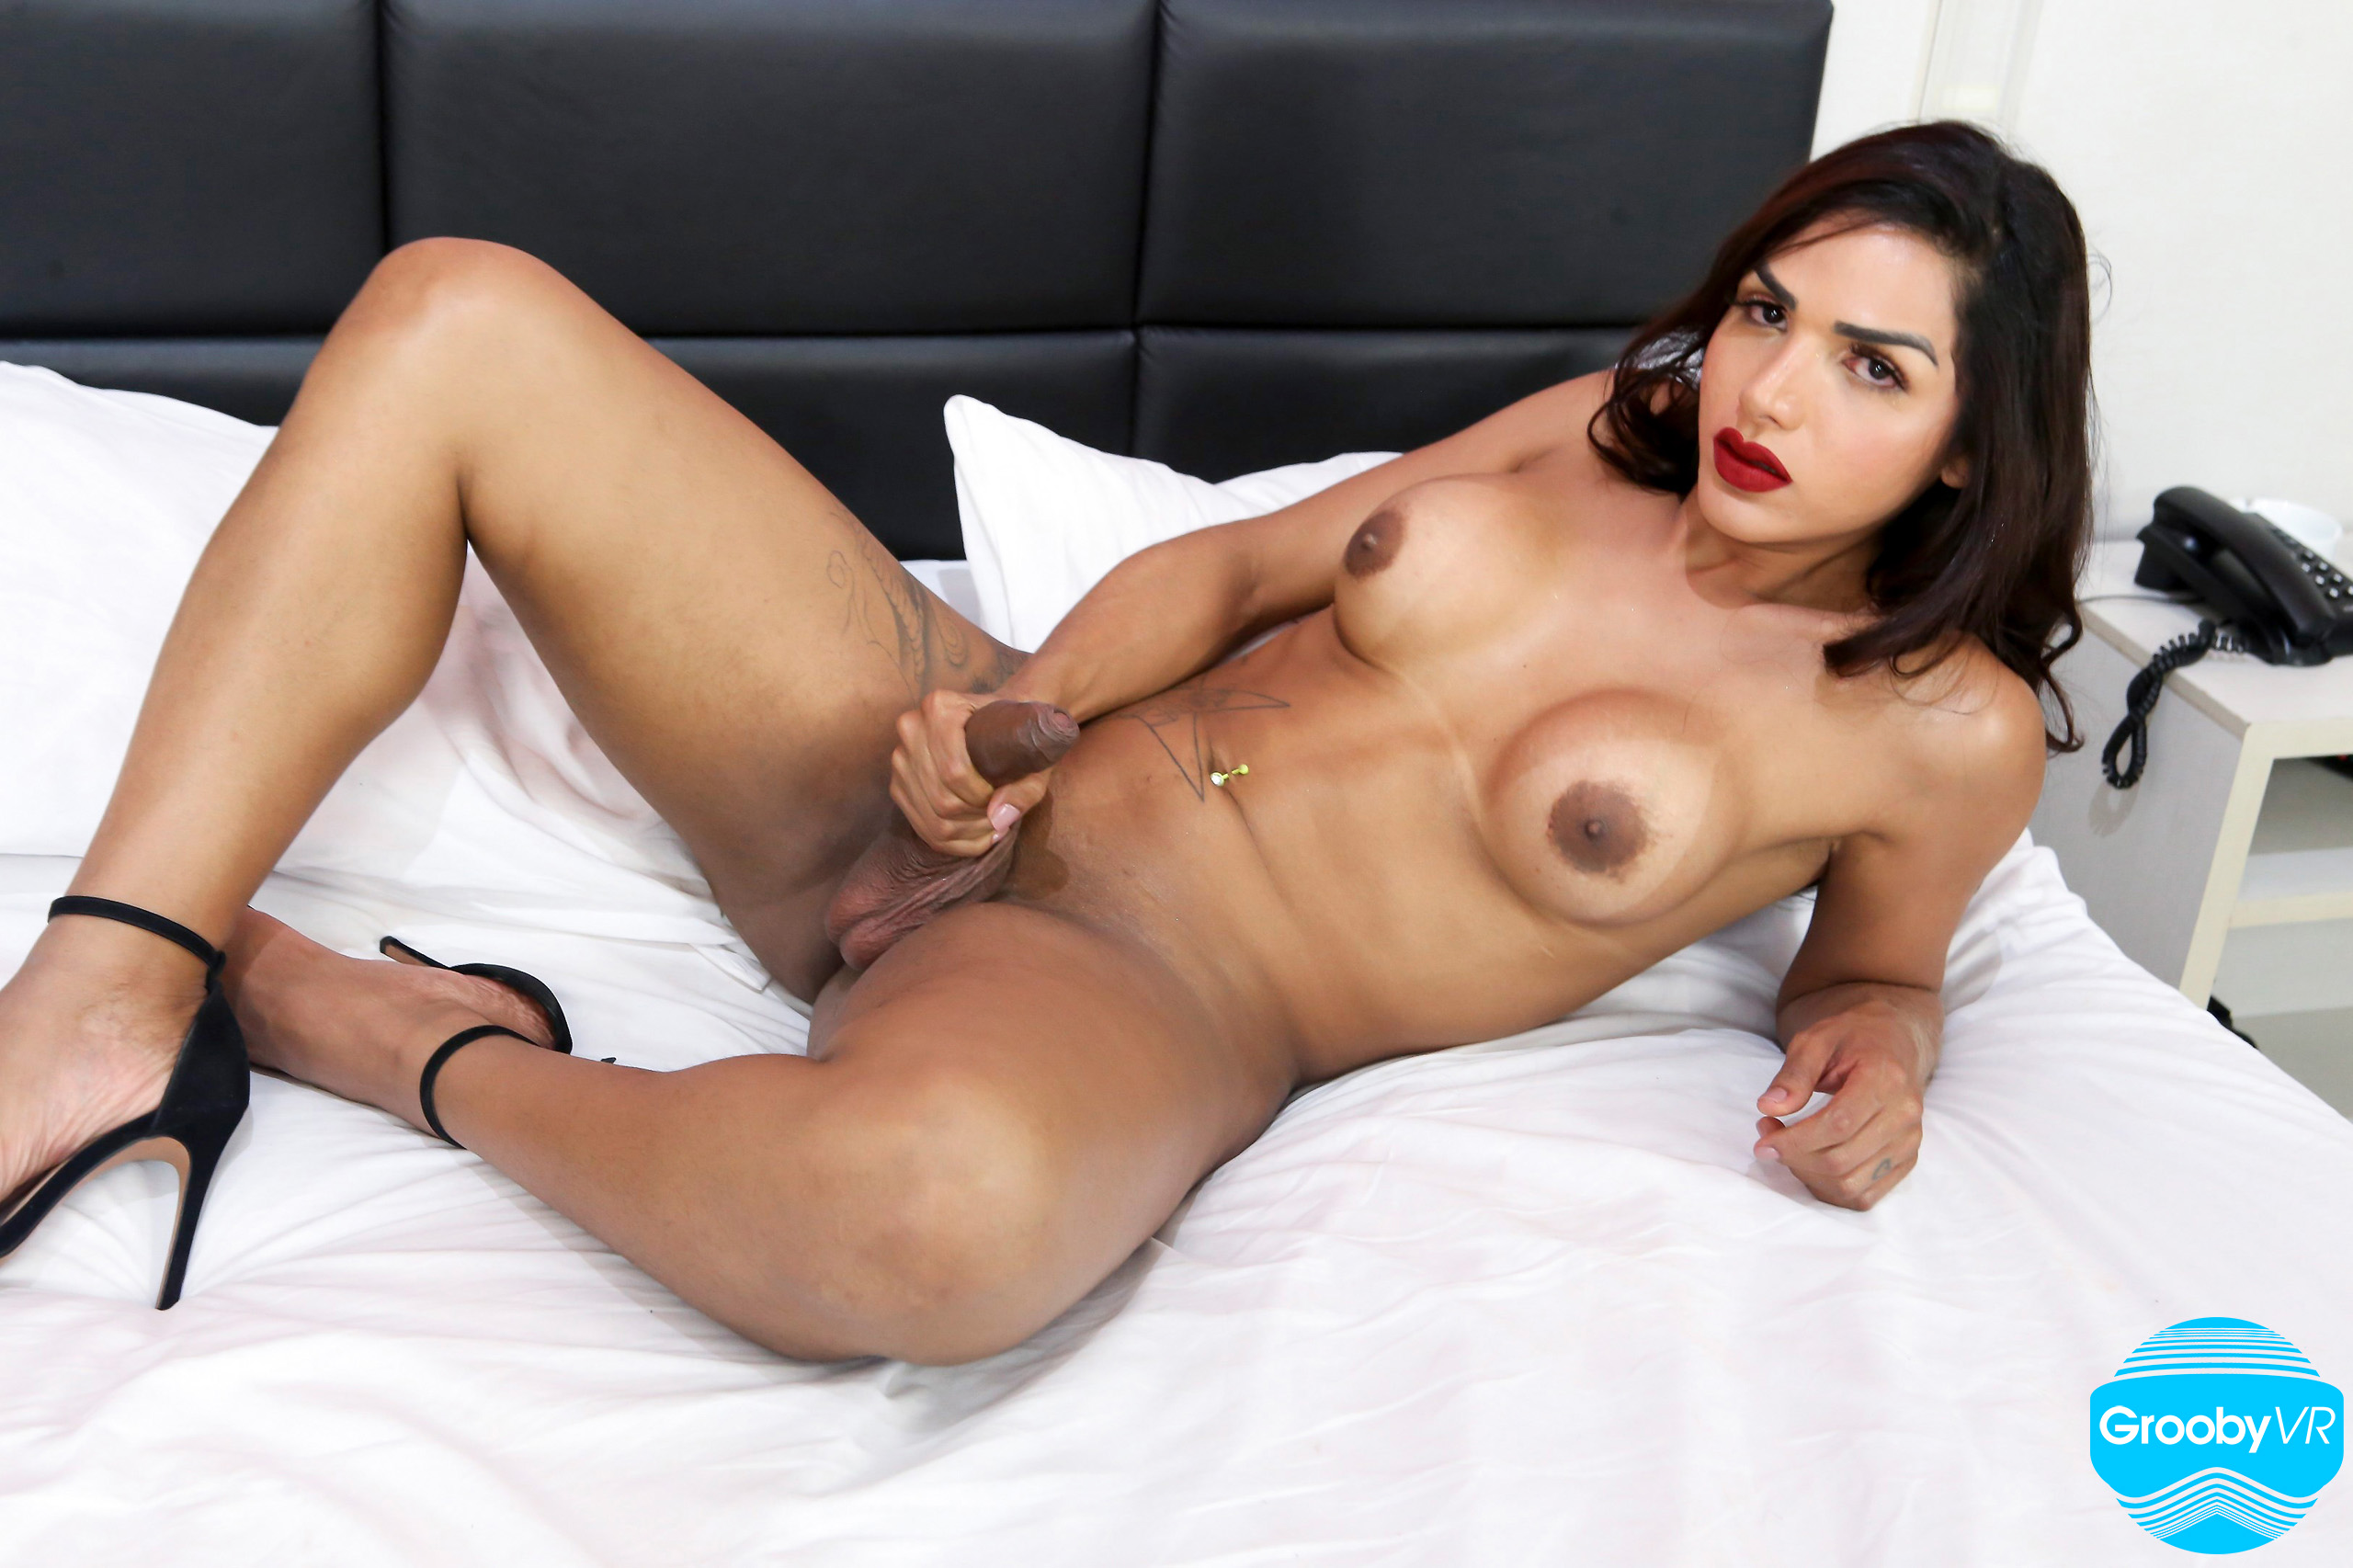 Download photo groobyvr transsexual porn